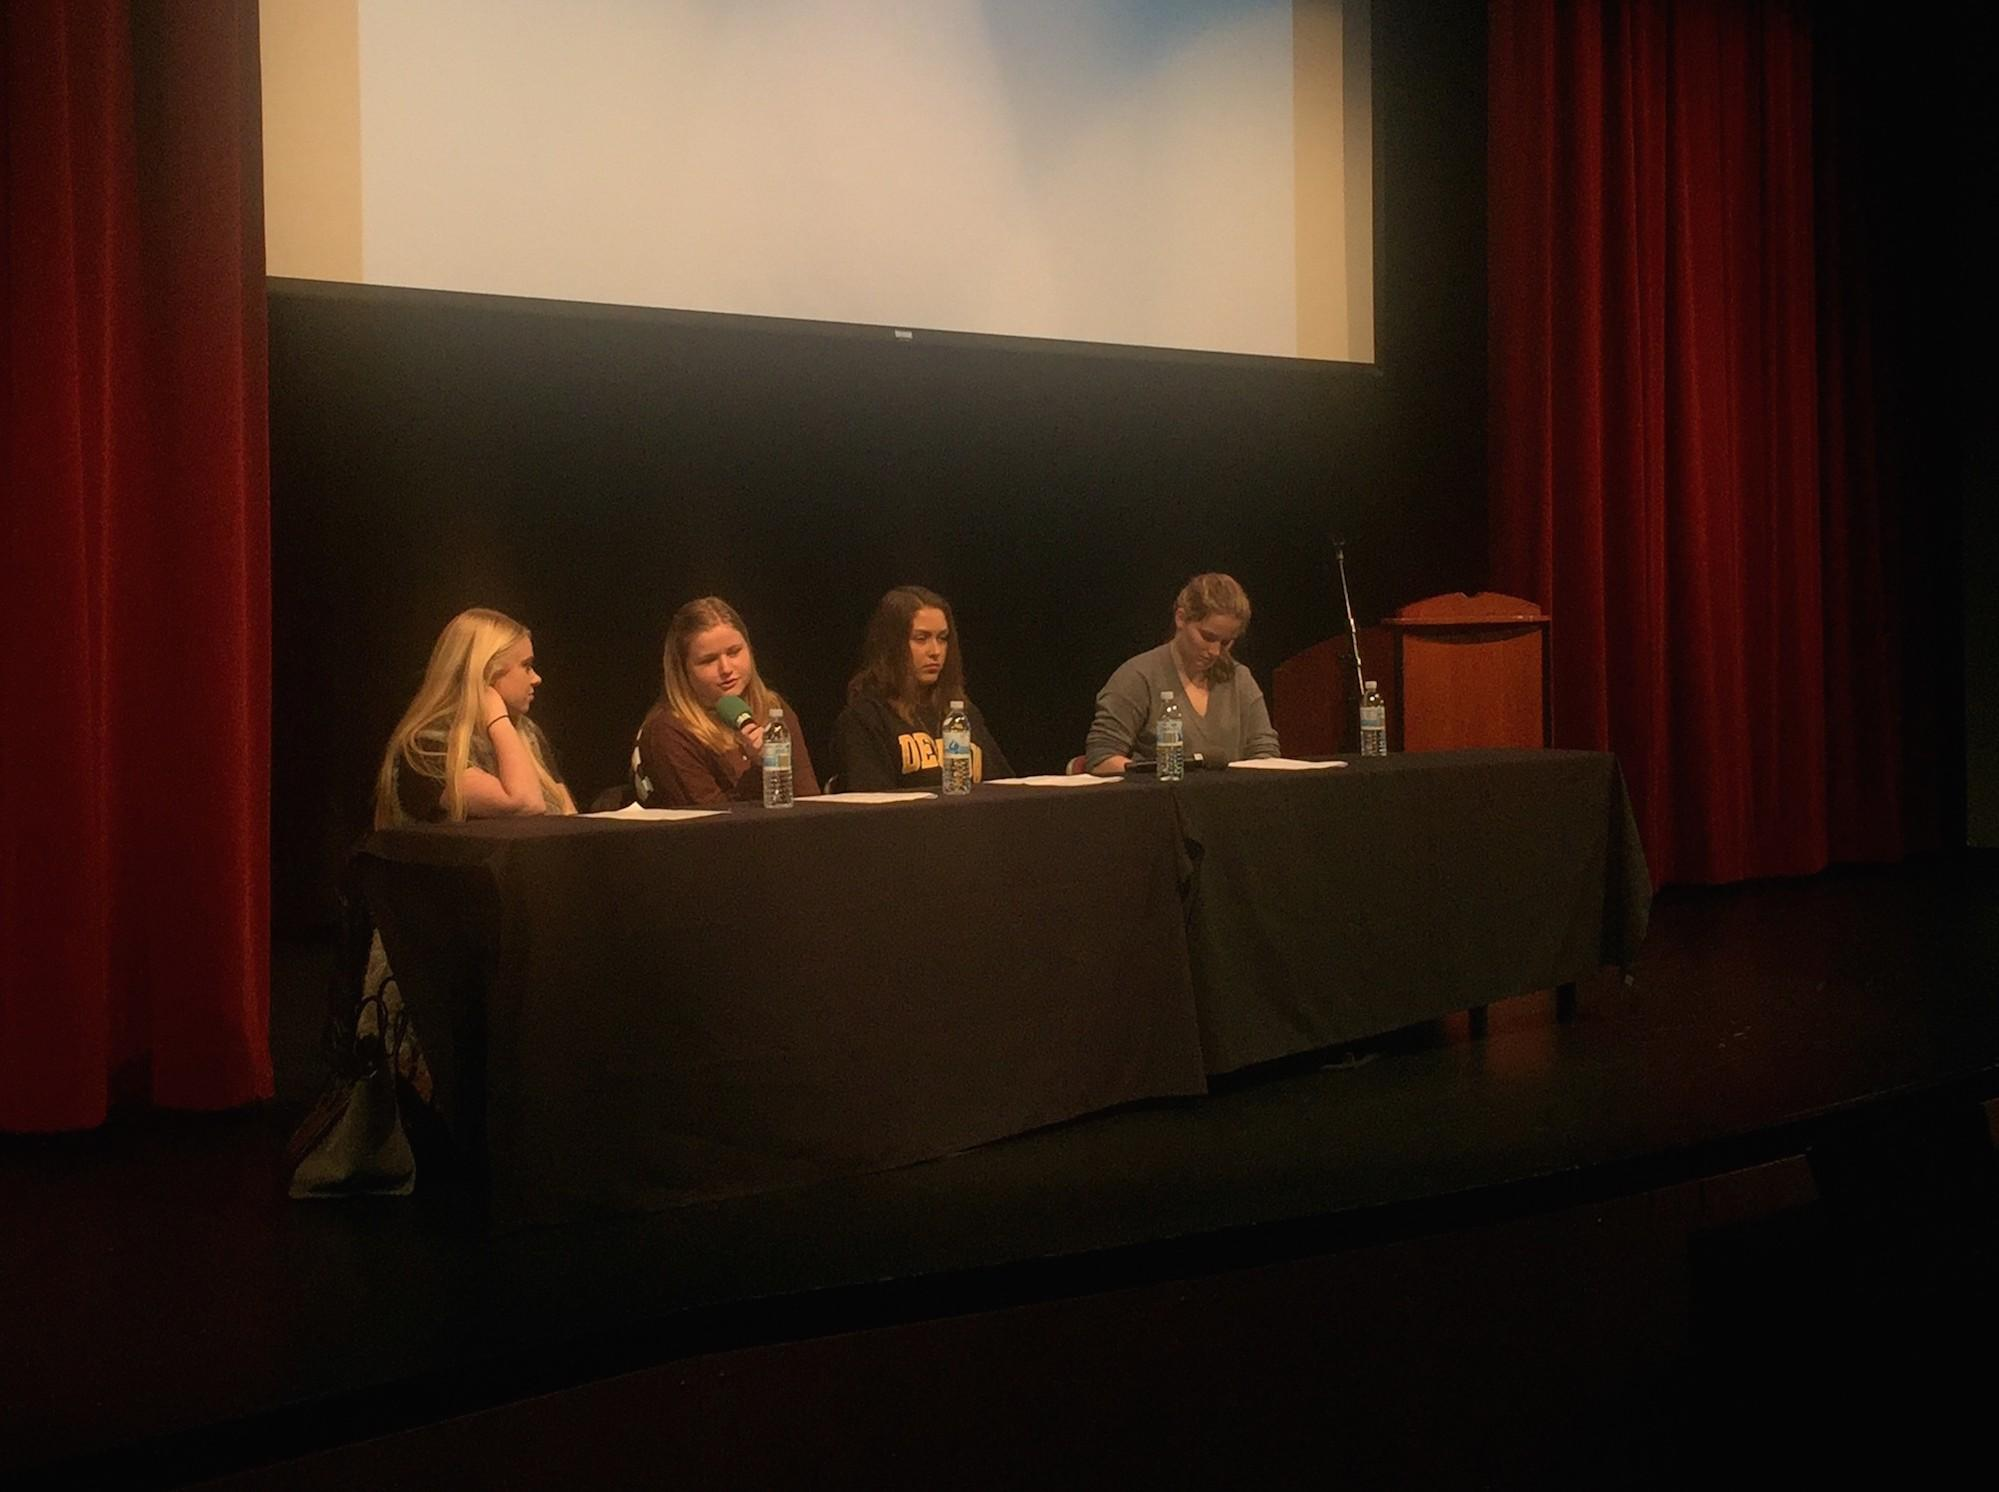 Alumnae answer questions from the Class of 2016 about the expectations of college and the steps to be taken for future success.